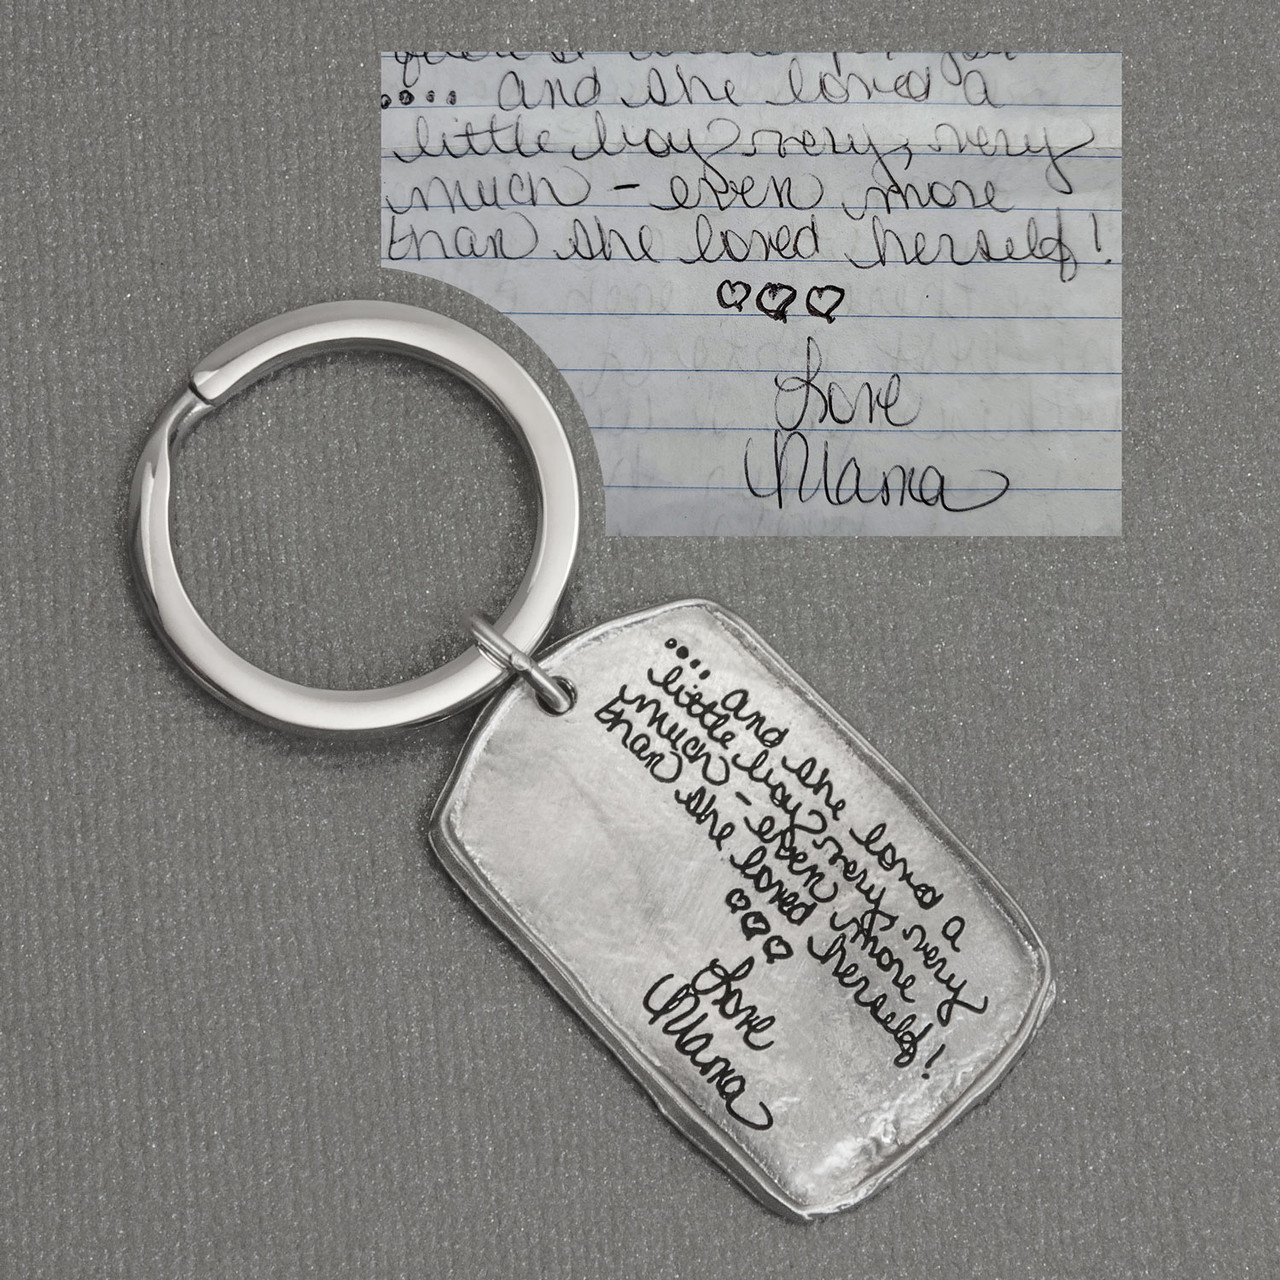 Military tag handwritten key chain, shown with the original handwriting used to make it